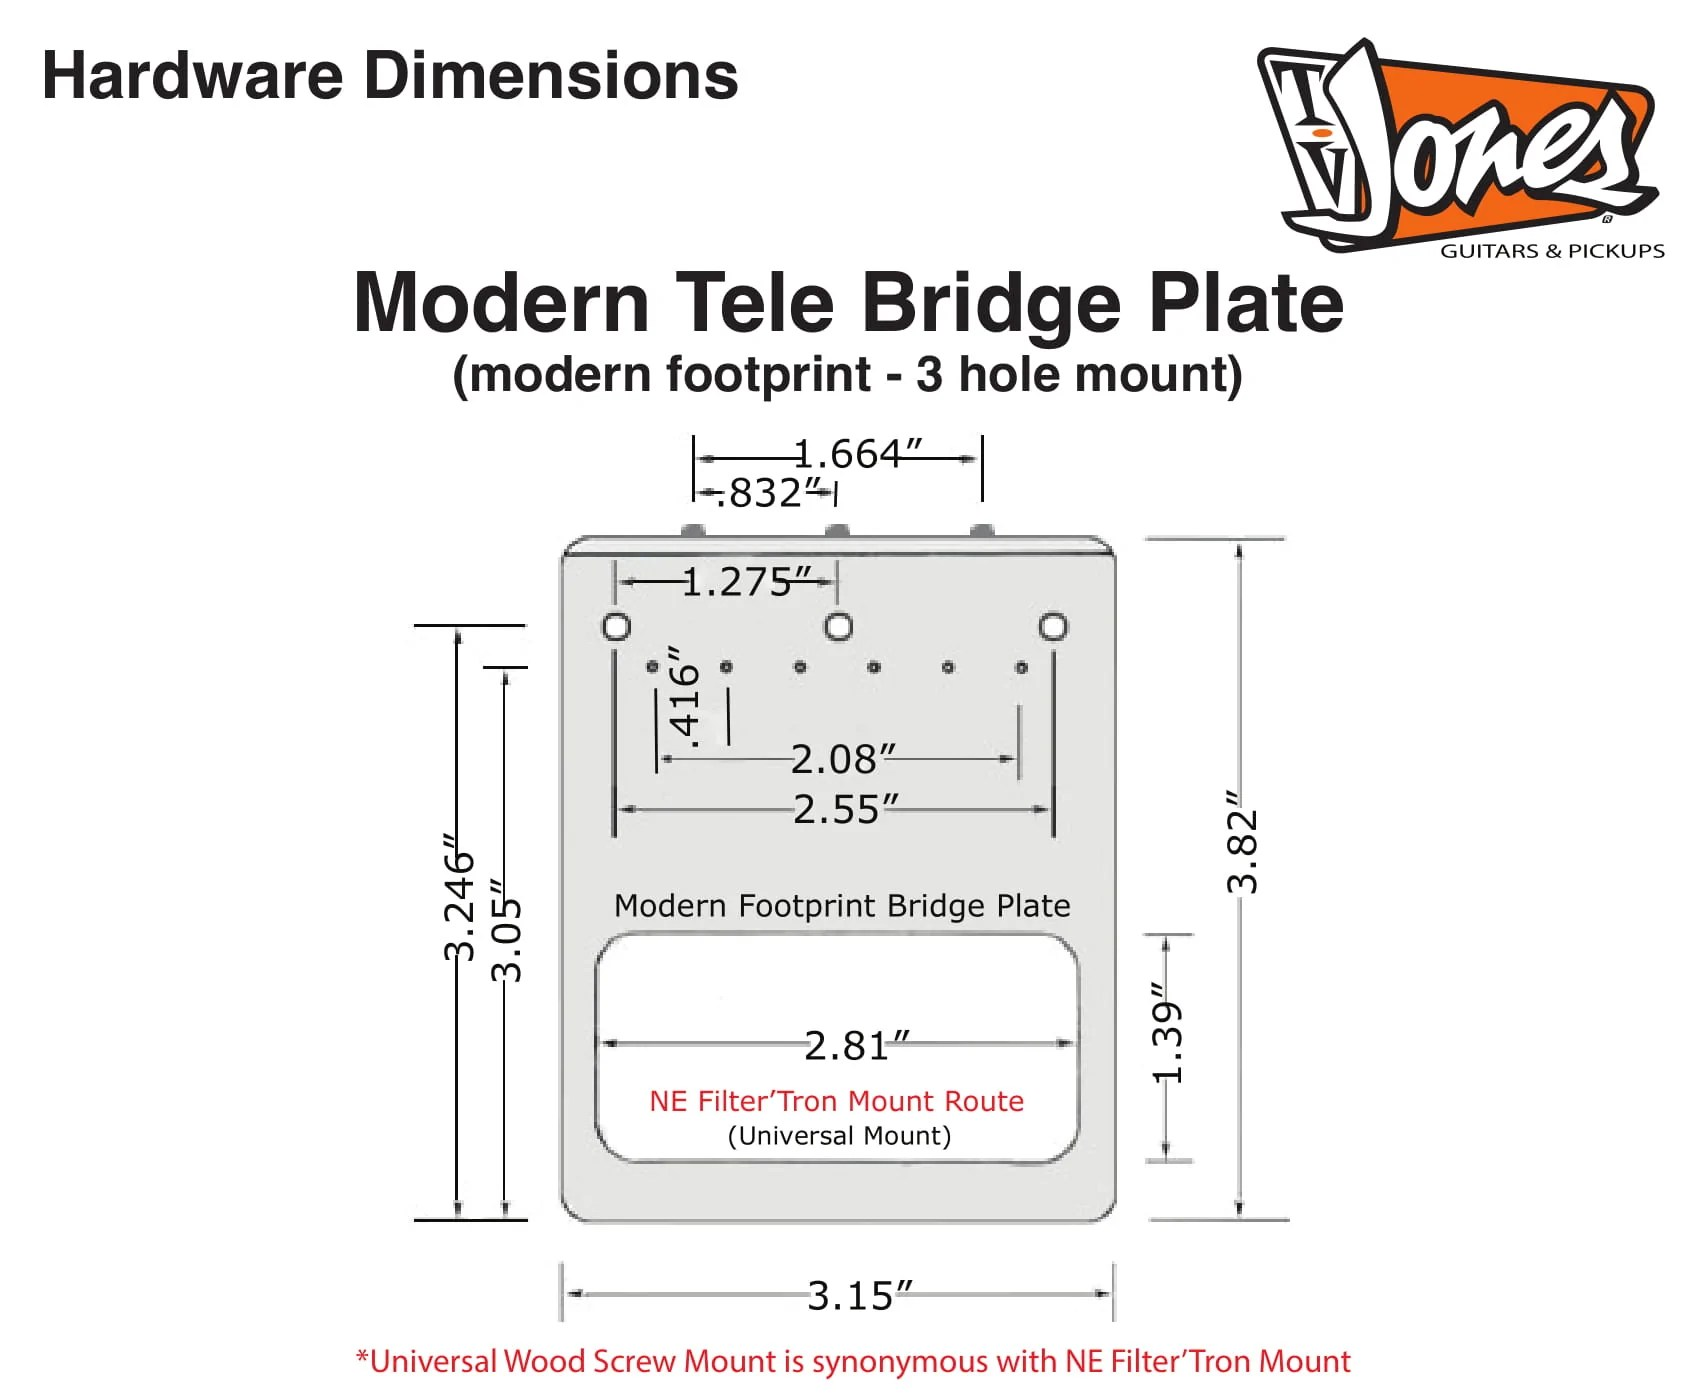 small resolution of modern vs original the modern tele bridge plate mounts with 3 holes and the original tele bridge plate mounts with 4 holes